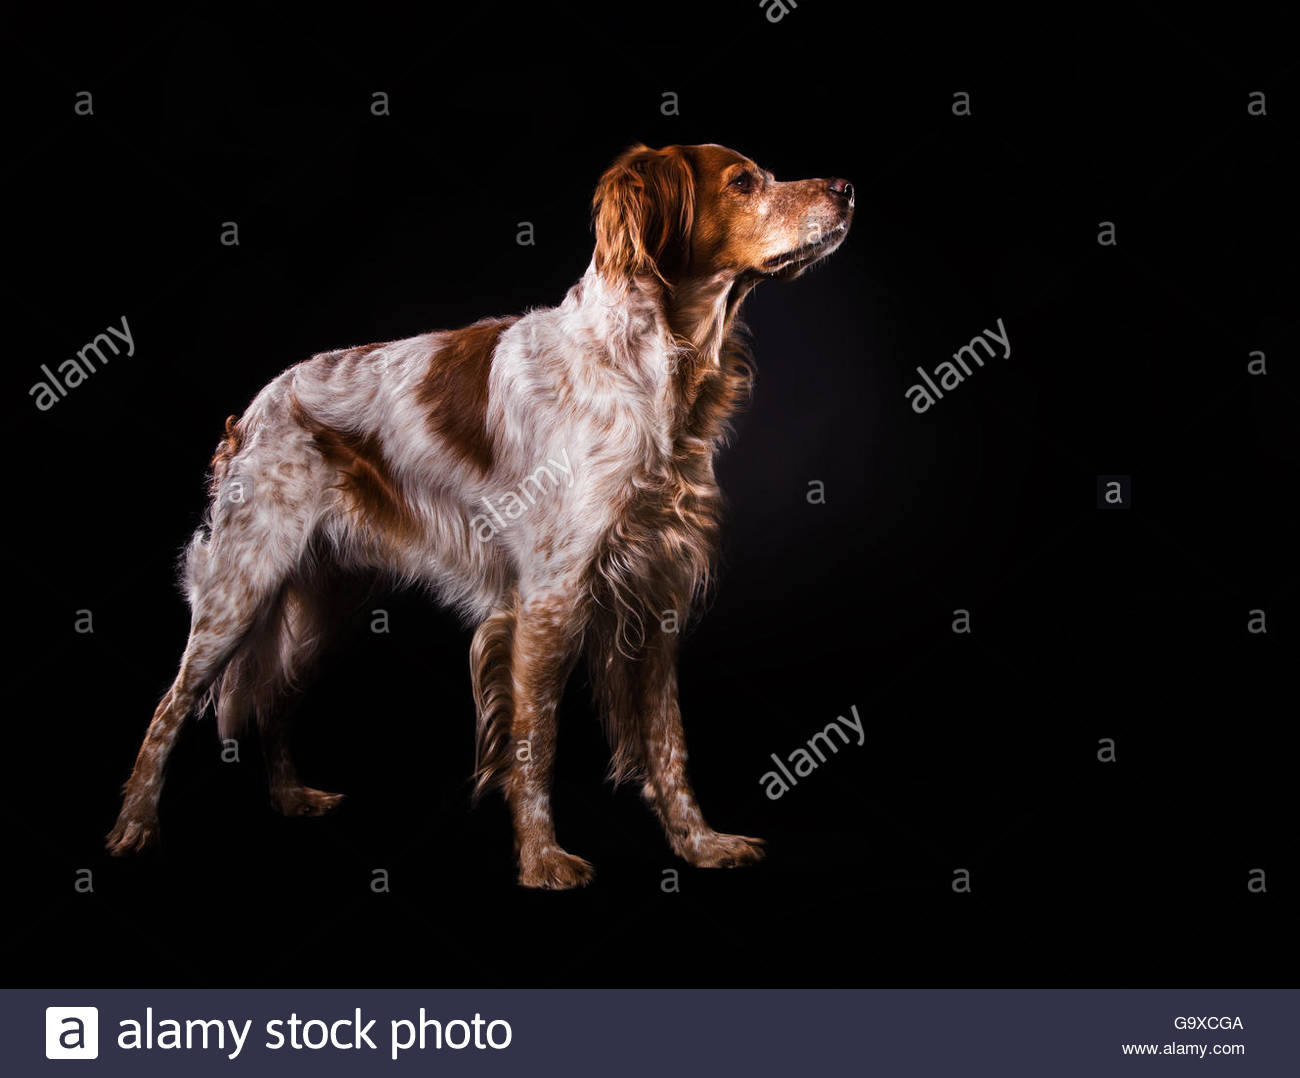 D Studioshot sideprofile article chien Epagneul Breton Photo Stock